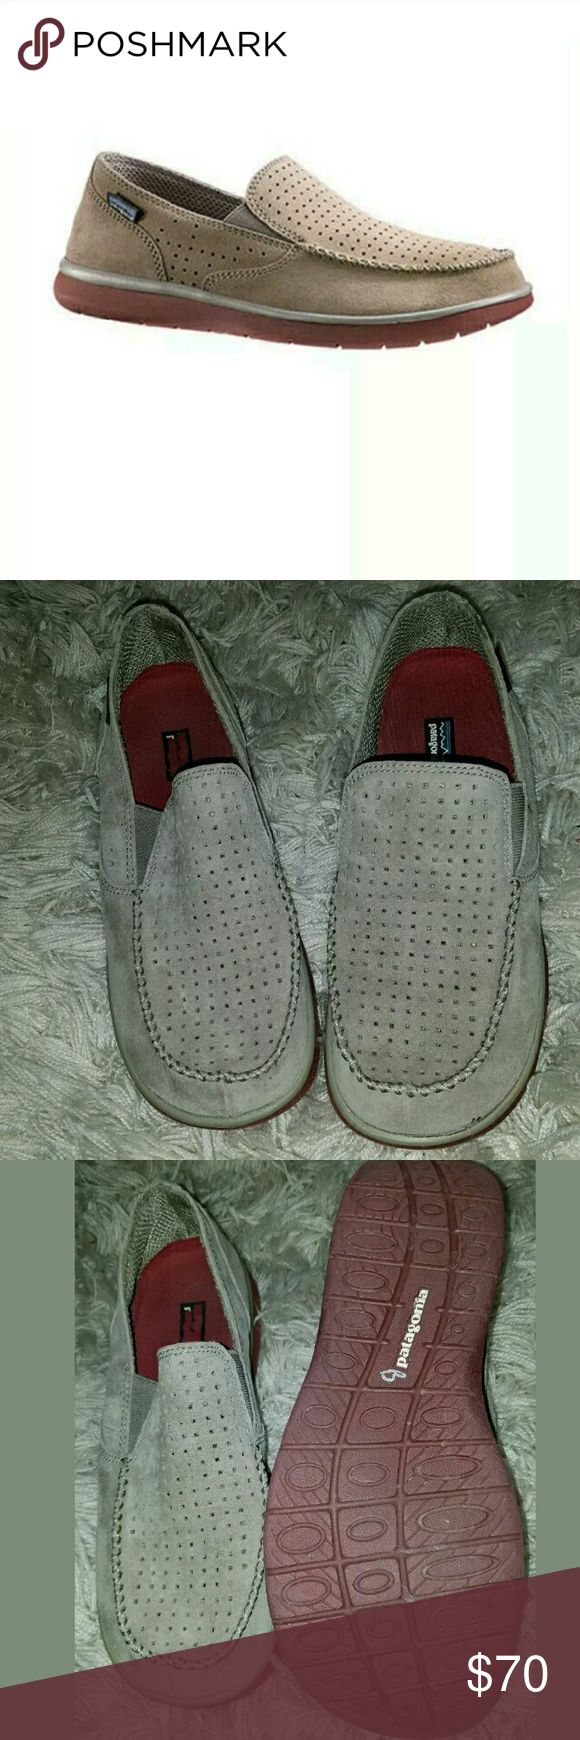 Patagonia Llama Loafer Casual Performance Shoes Men's Patagonia Llama Loafer Casual Performance Shoes Tan Rubber Soles Size 10  Shoes in excellent used condition.   AB Patagonia Shoes Loafers & Slip-Ons